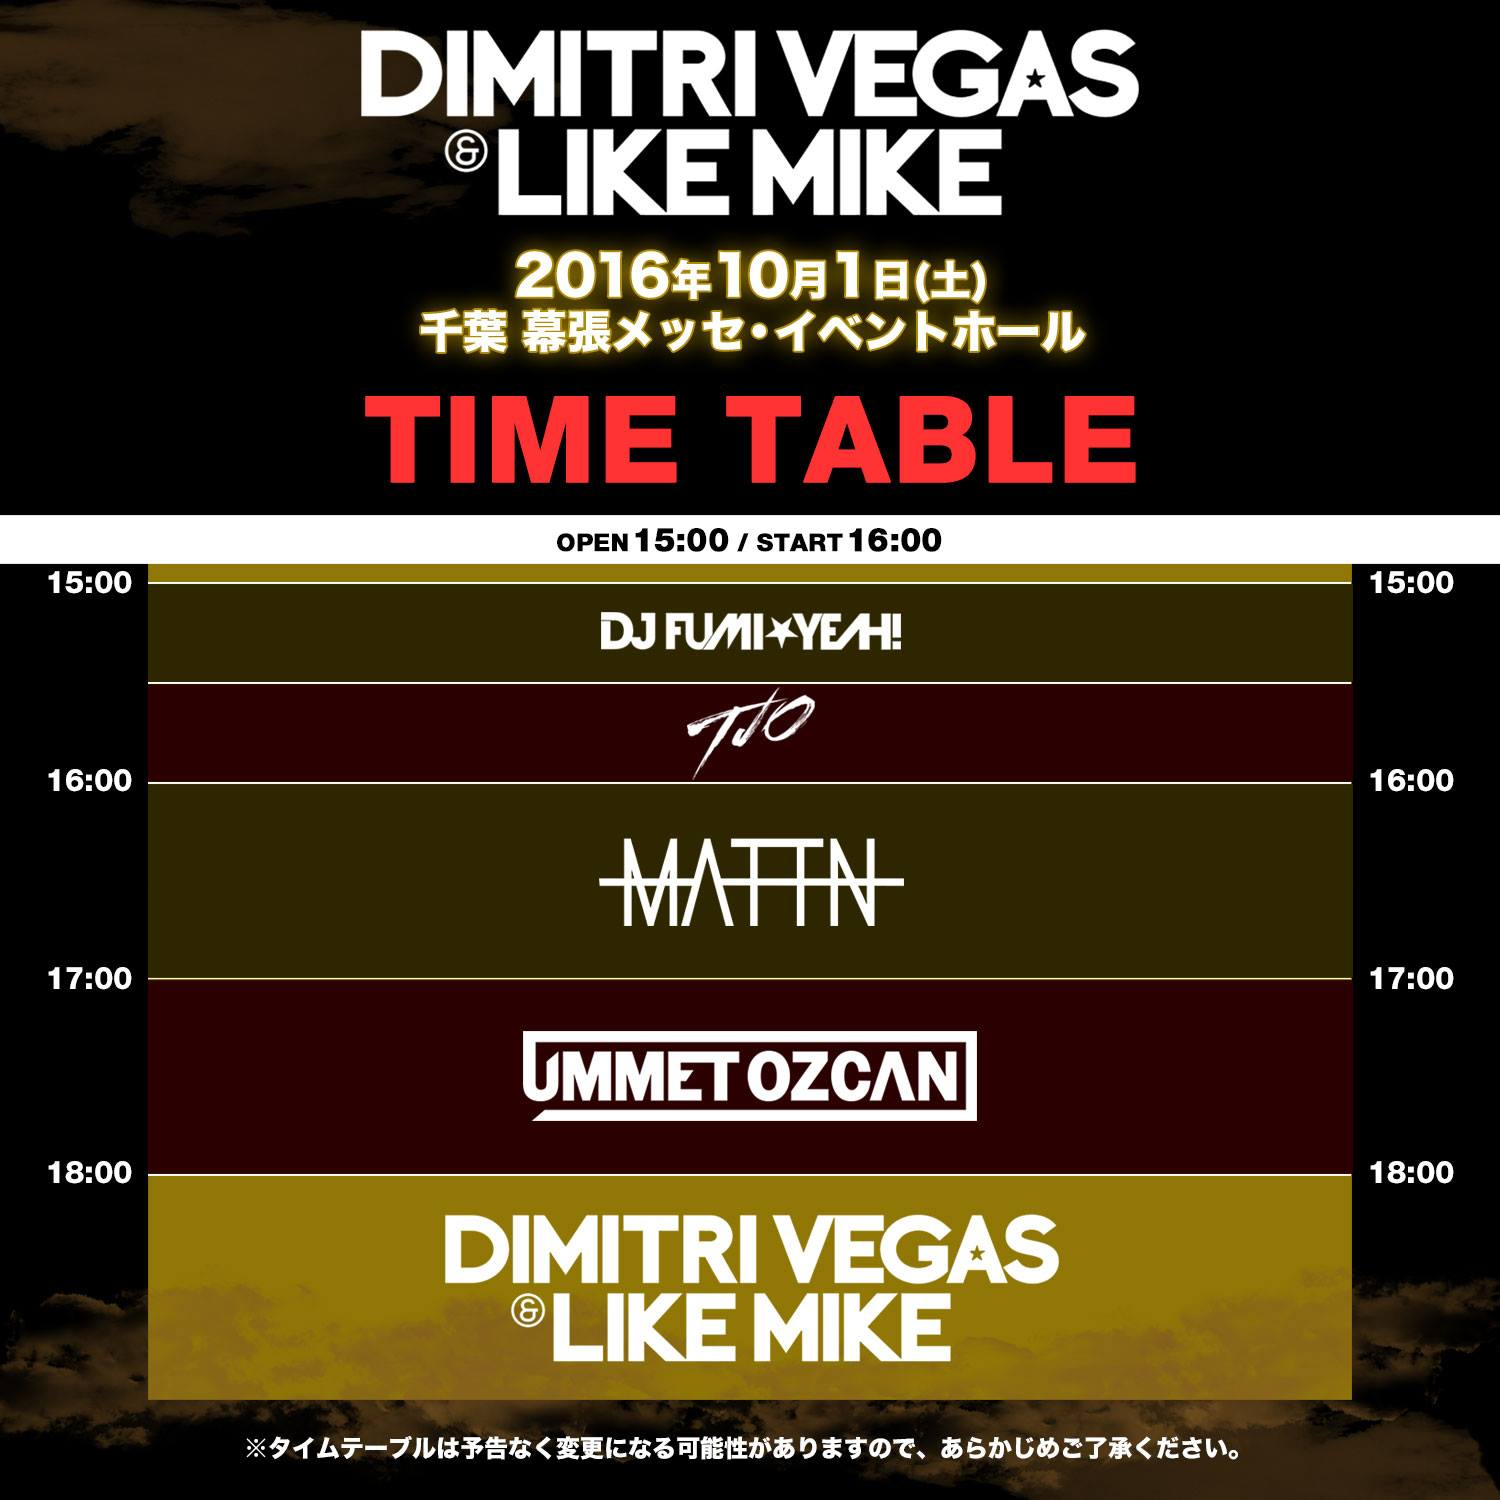 dimitri-vegas-like-mike-timetable-20161001